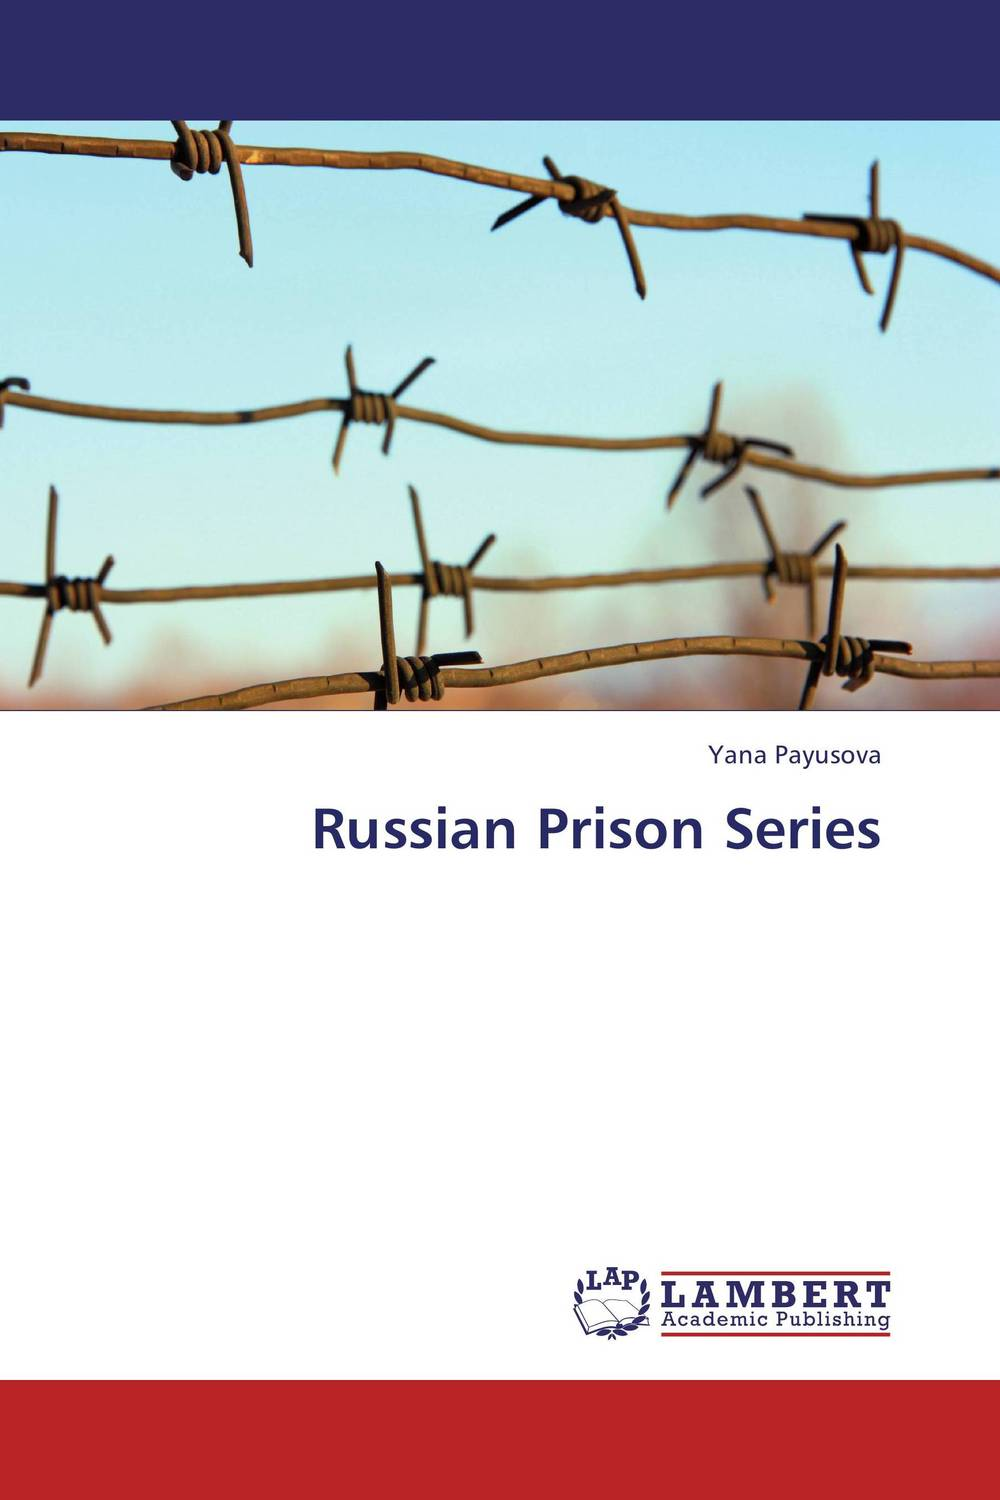 Russian Prison Series фотоальбом the conquest yakov khalip heir to the russian avant garde